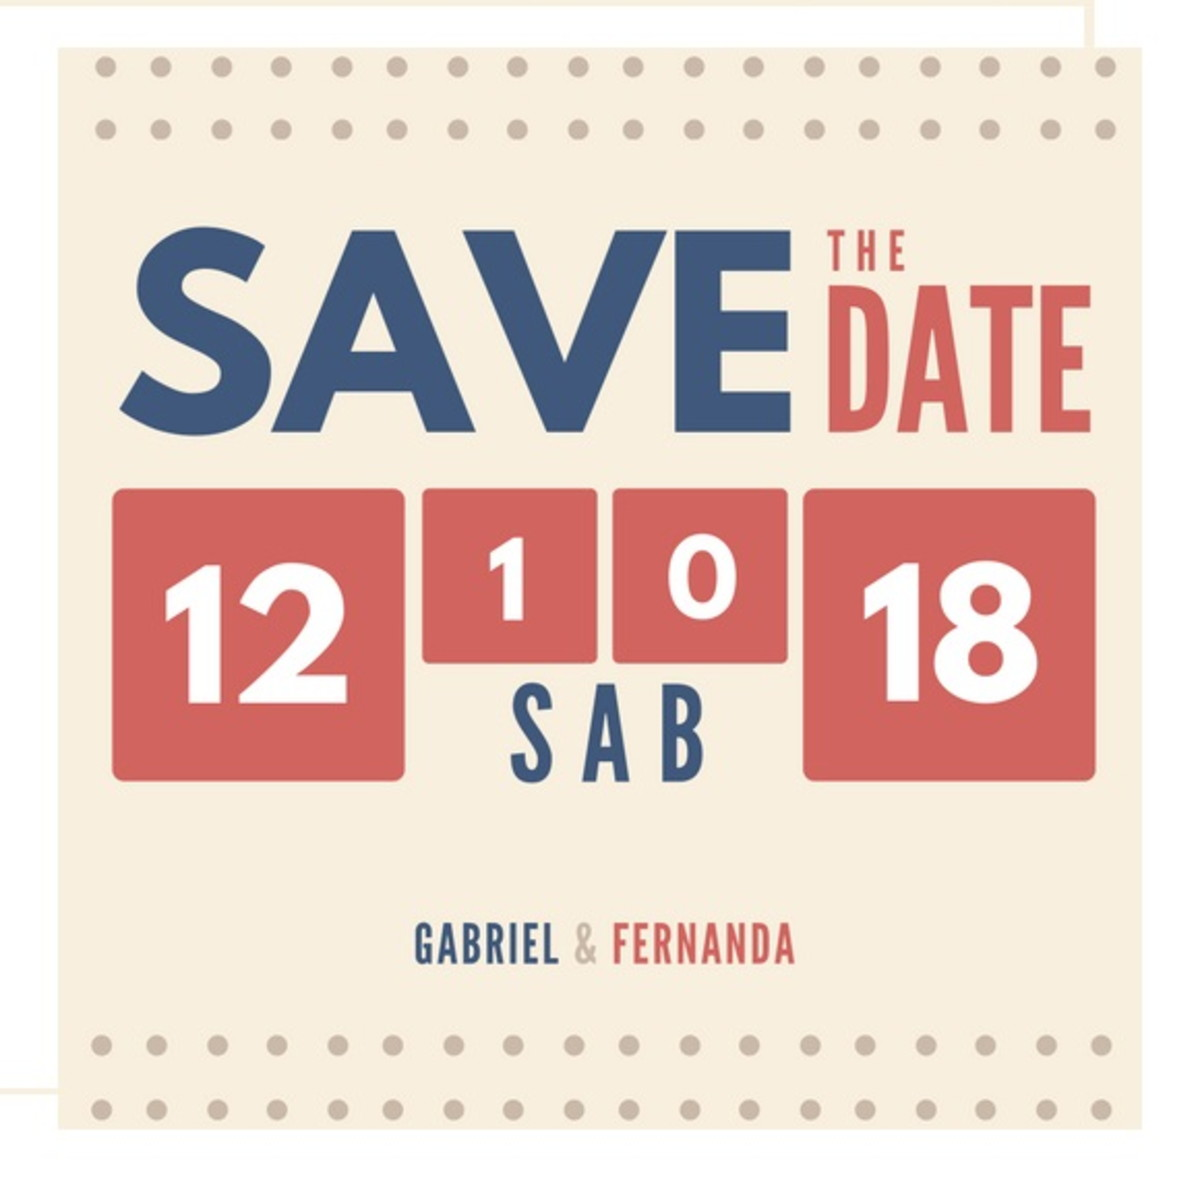 convite digital save the date no elo7 sweet candy art d03552